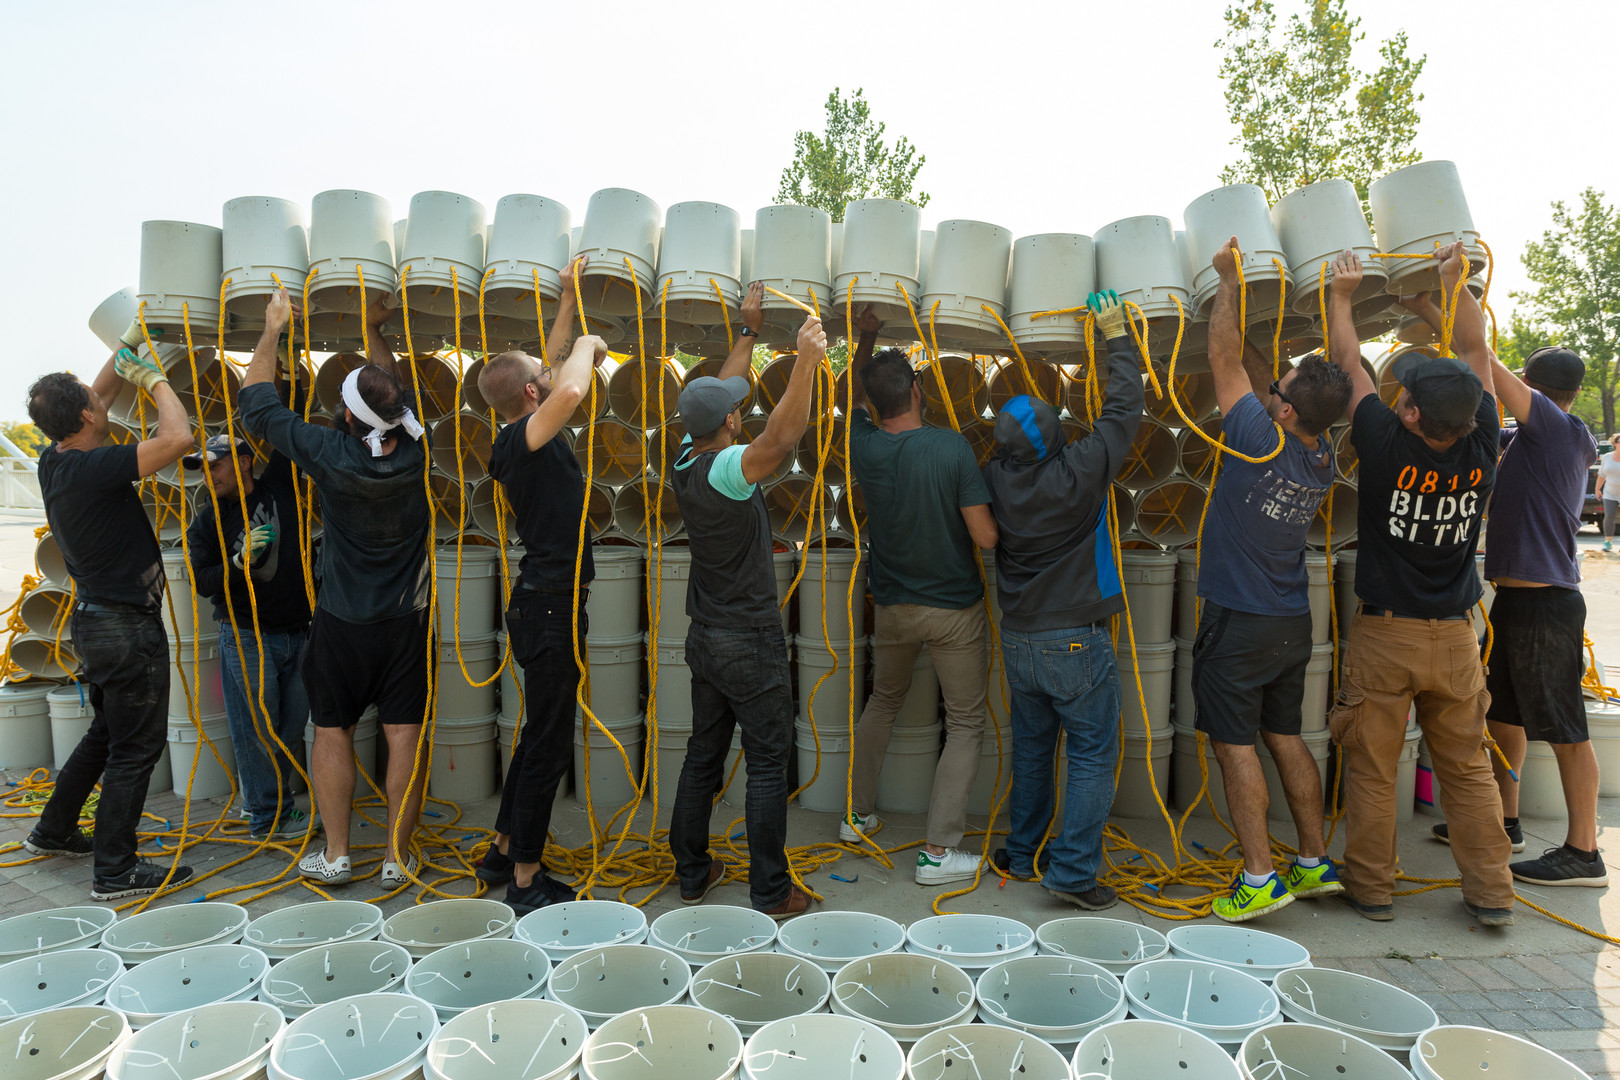 ONE BUCKET_IN PROGRESS | 546 Arch + Fact